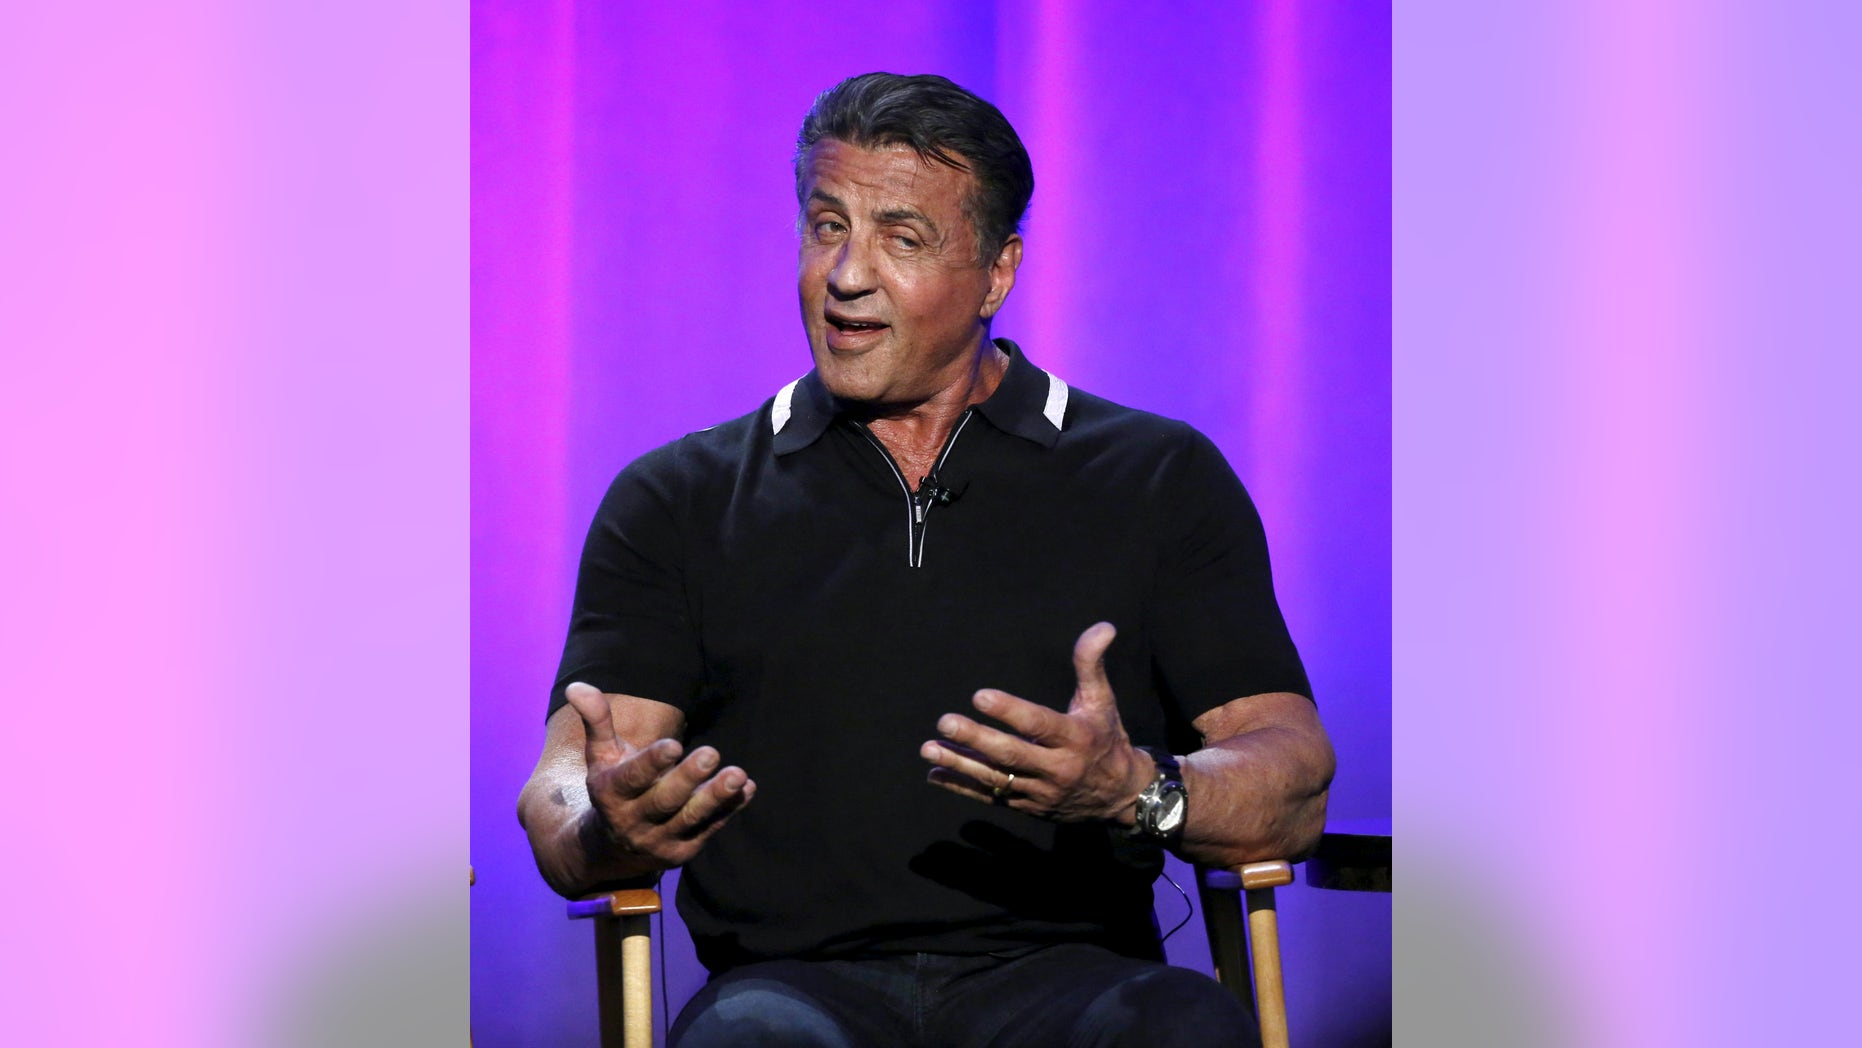 """Executive producer Sylvester Stallone speaks at a panel for the television show """"S.T.R.O.N.G."""" during the NBCUniversal summer press day in Westlake Village, California April 1, 2016.    REUTERS/Mario Anzuoni - RTSD7WB"""